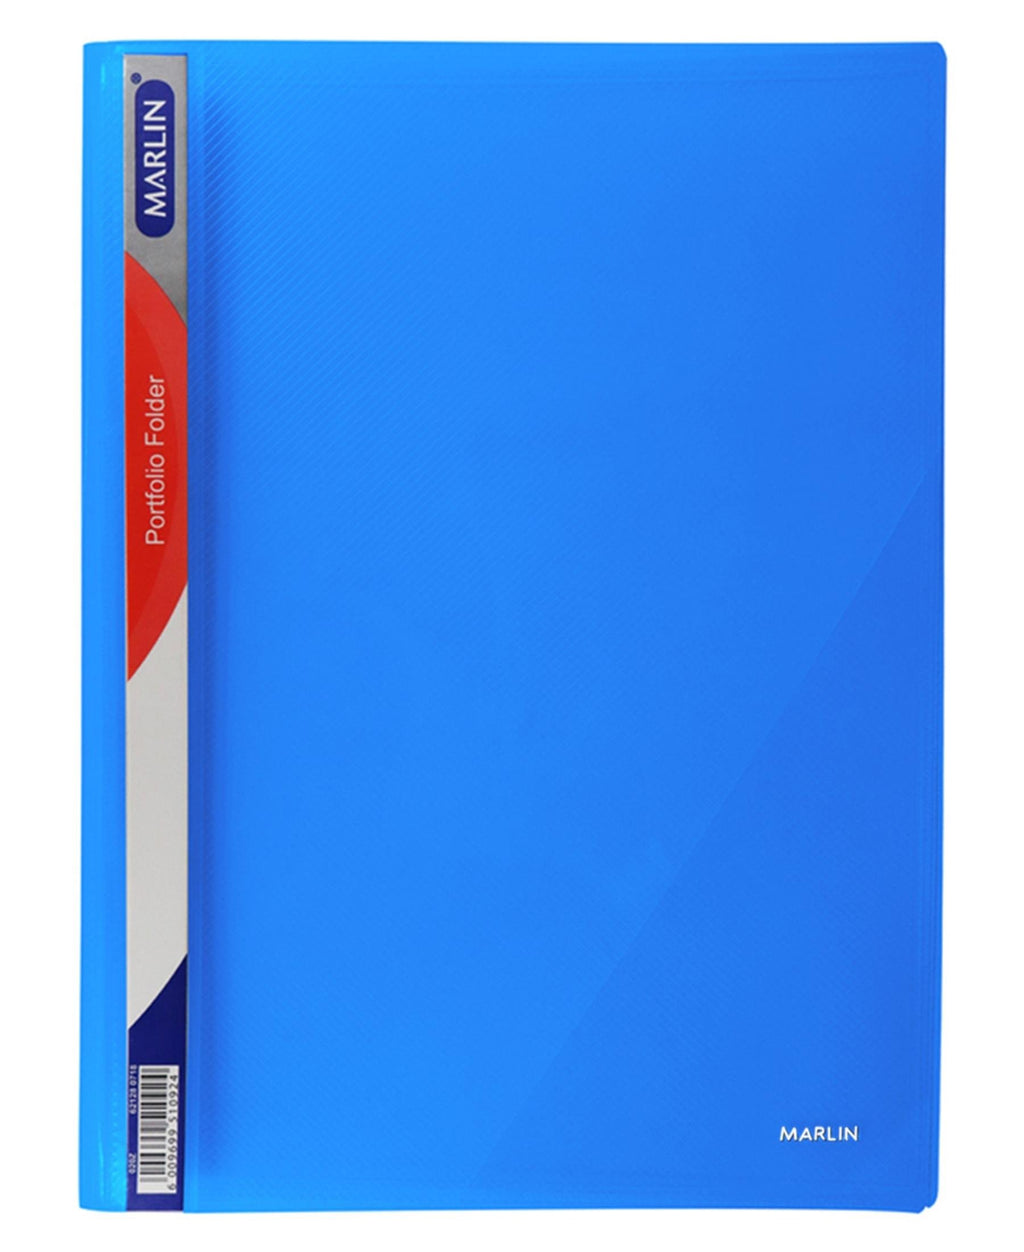 Marlin Portfolio Folder - Blue